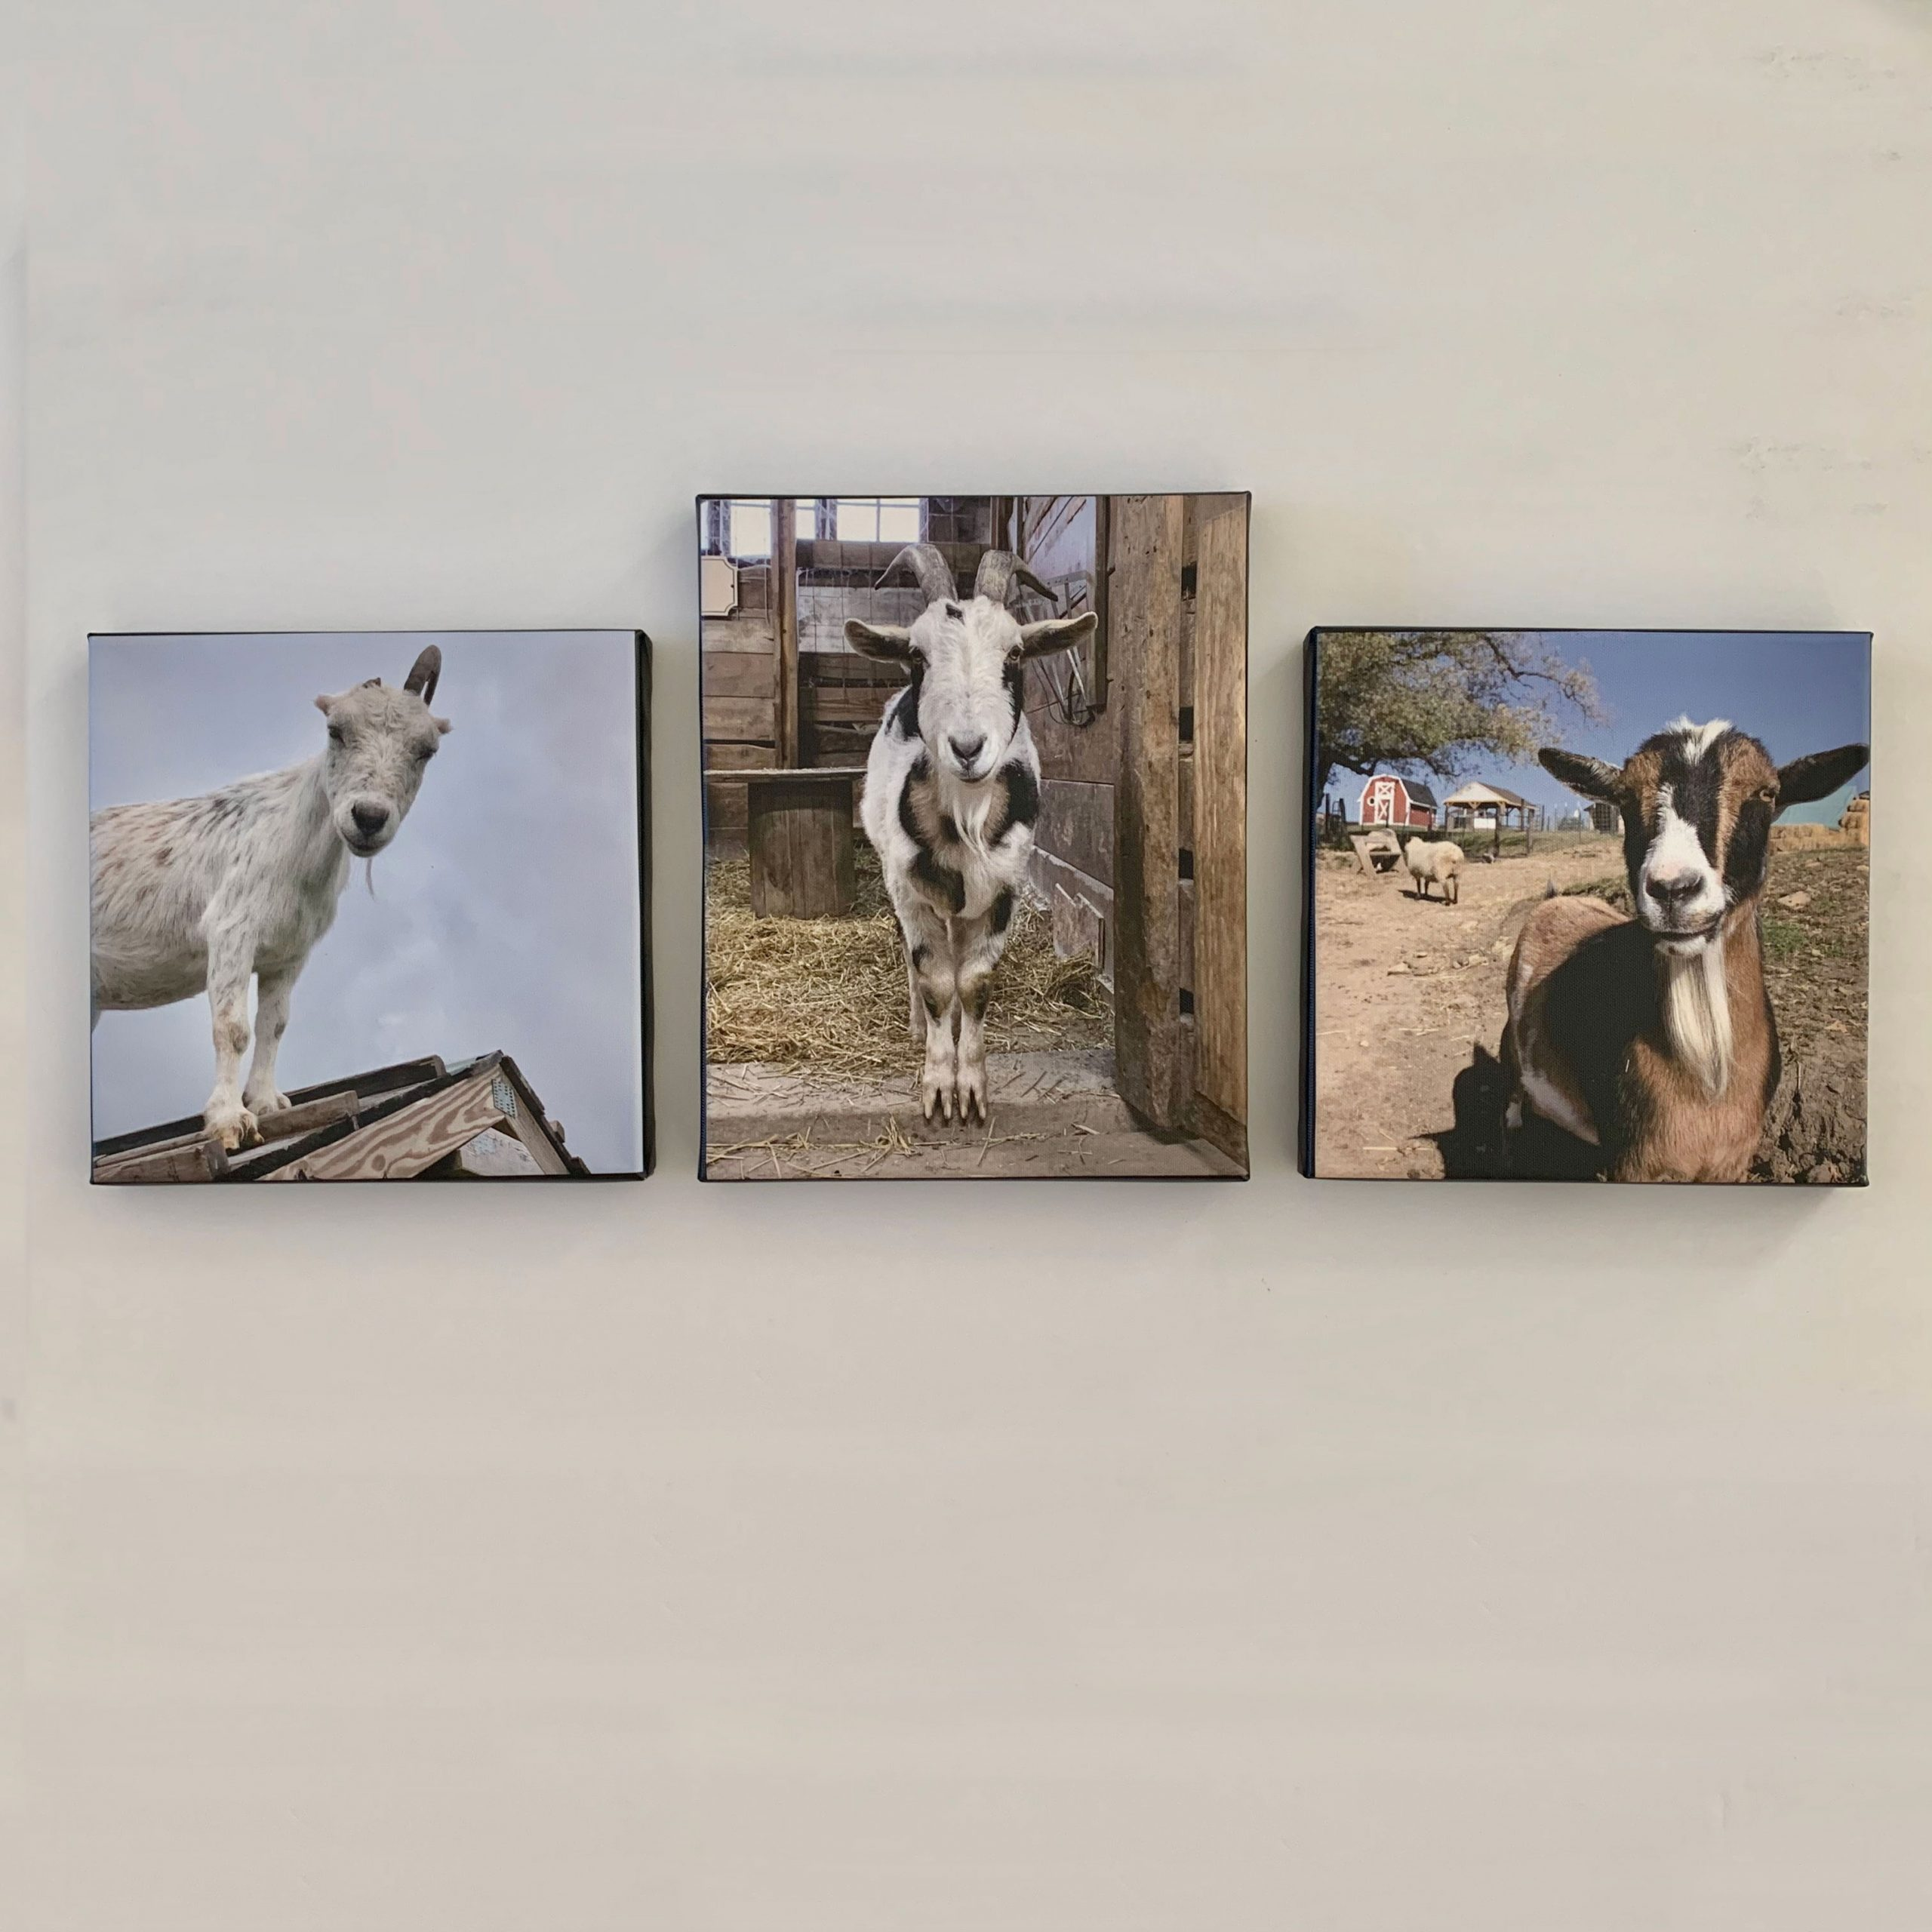 3 goat photo canvases